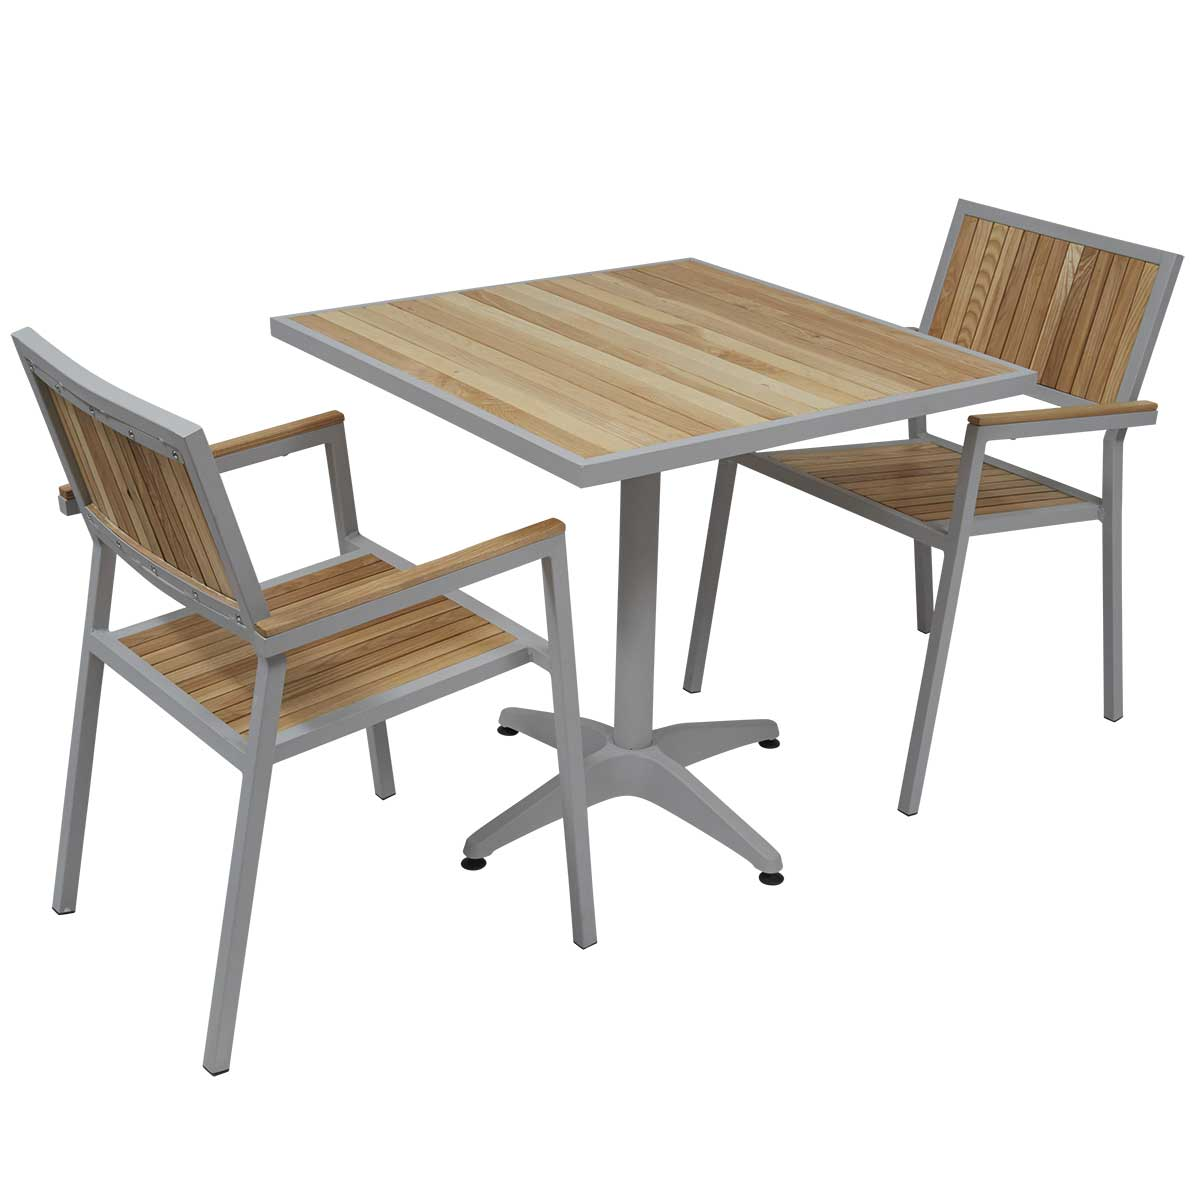 Table solde Inspirant Table Terrasse Pas Cher